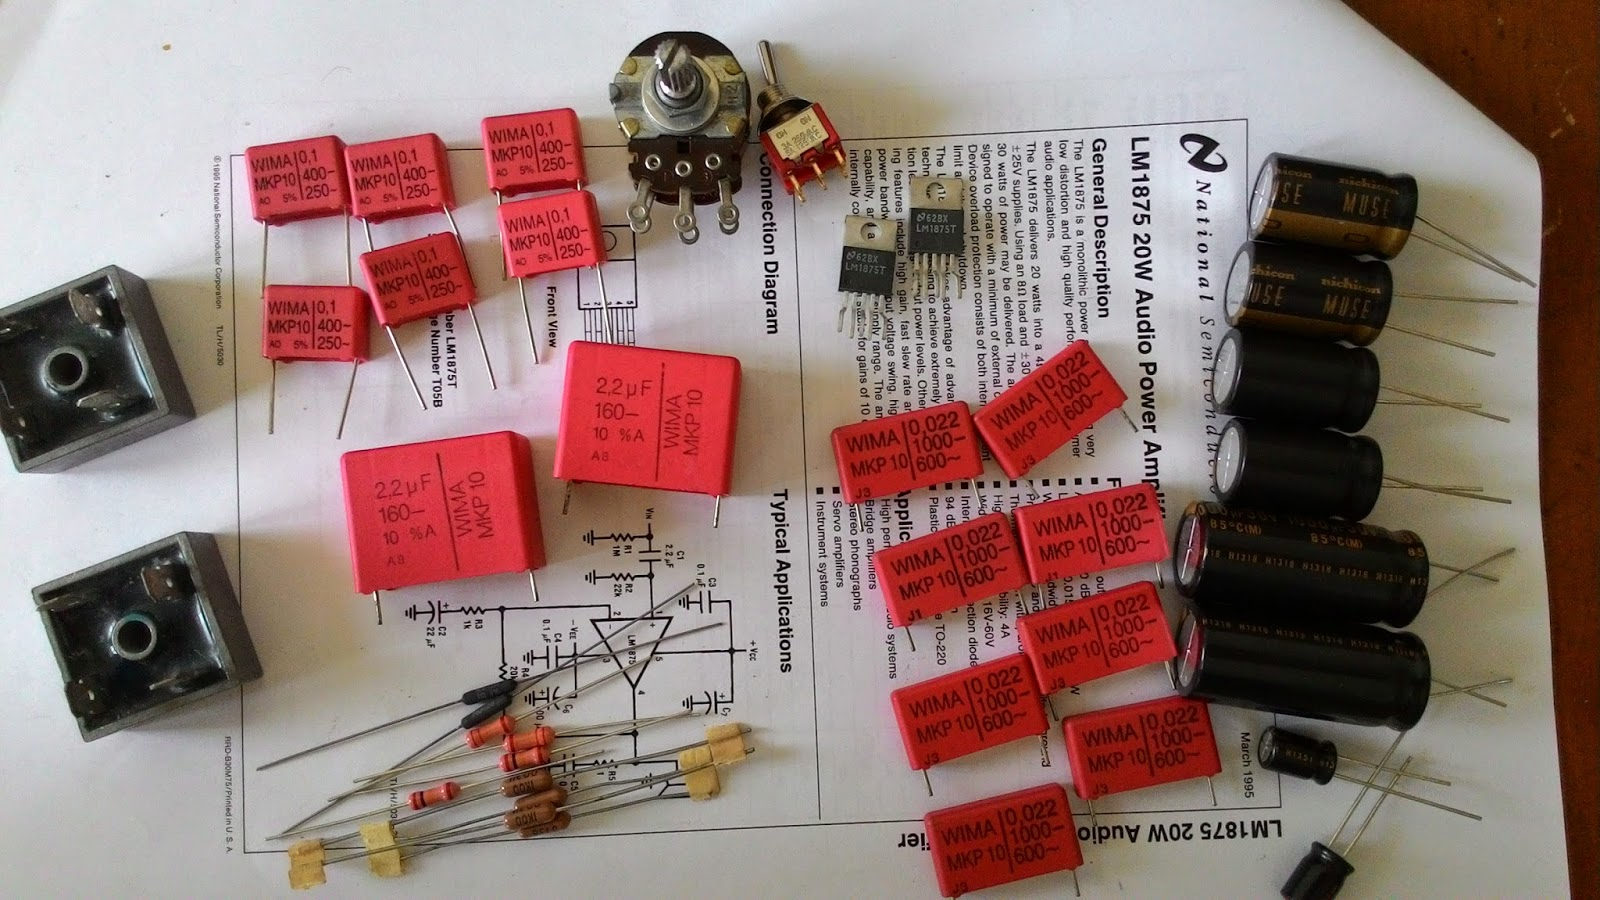 The Orronoco Audio Diy Gainclone Building Thread Part 1 How To Place A Coupling Capacitor In Circuit Input Are Wima Mkp 10 This New Old Stock Is Huge You Can Compare Size At Same Value